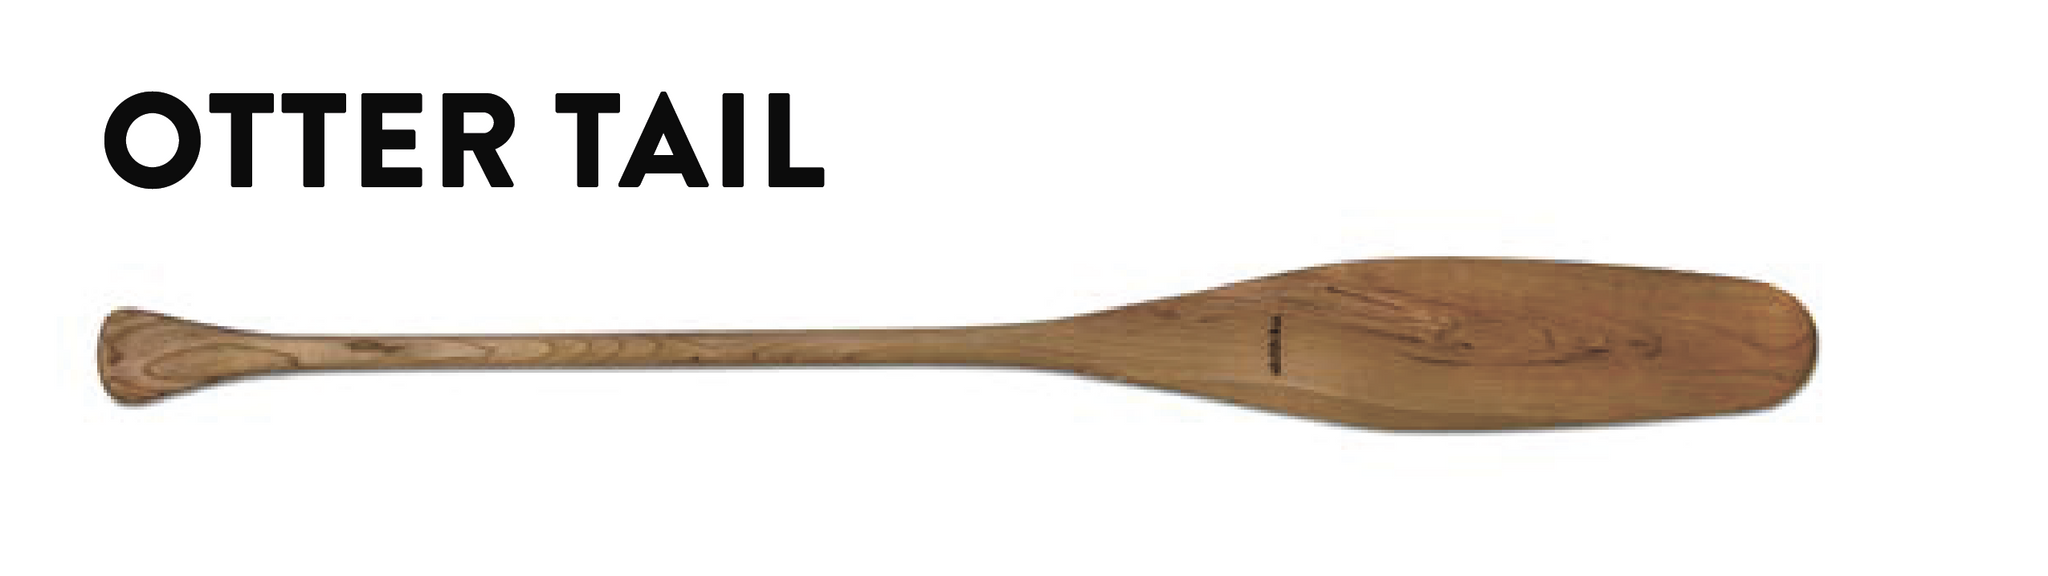 CANOE | Paddle exclusive series abitibi&co